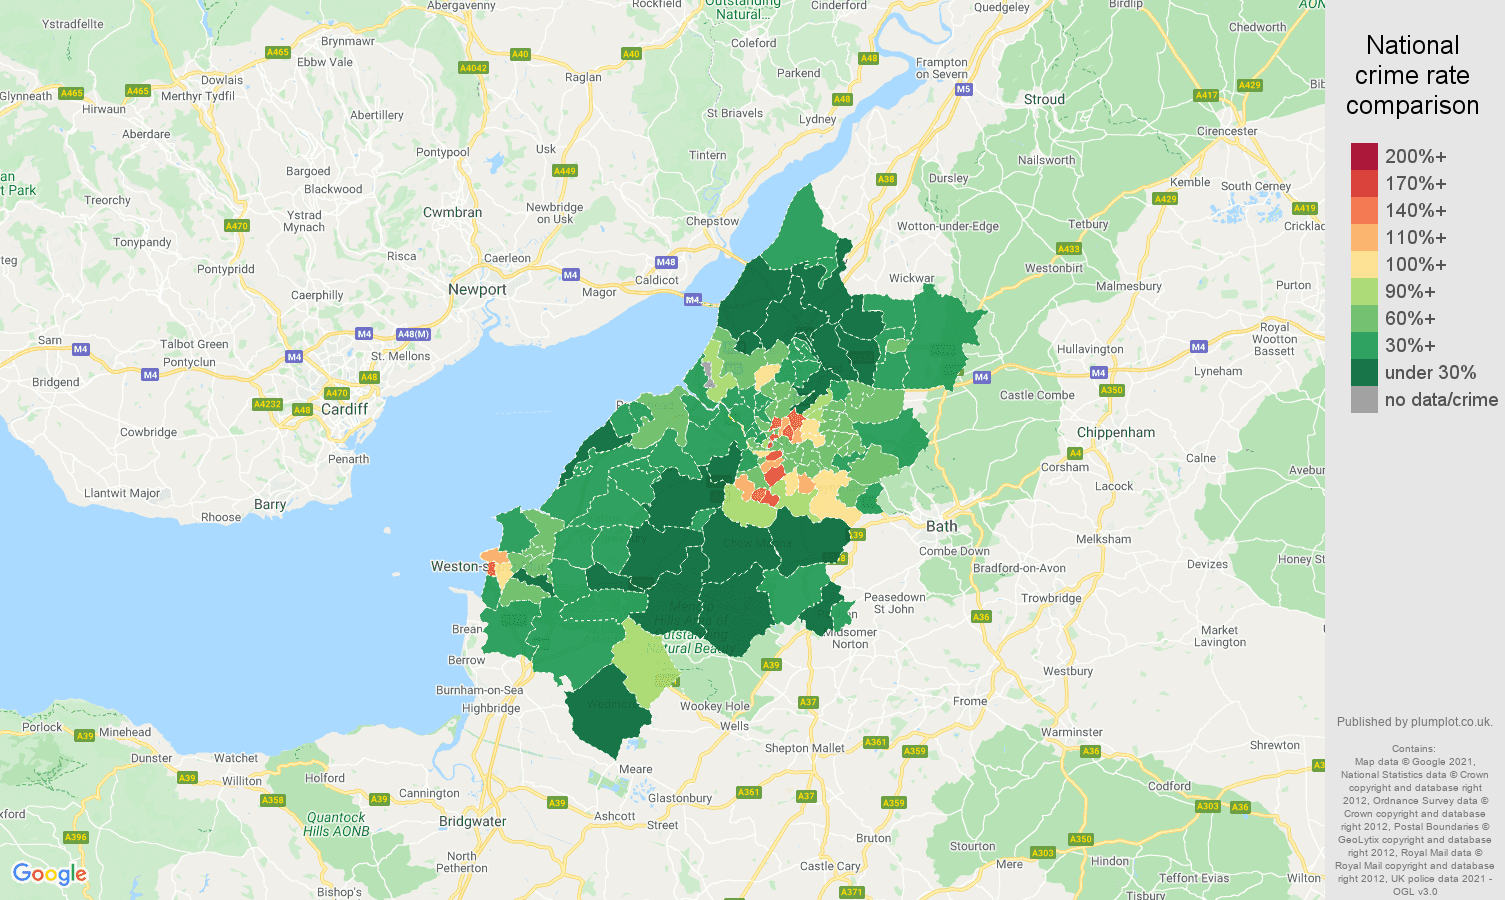 Bristol antisocial behaviour crime rate comparison map